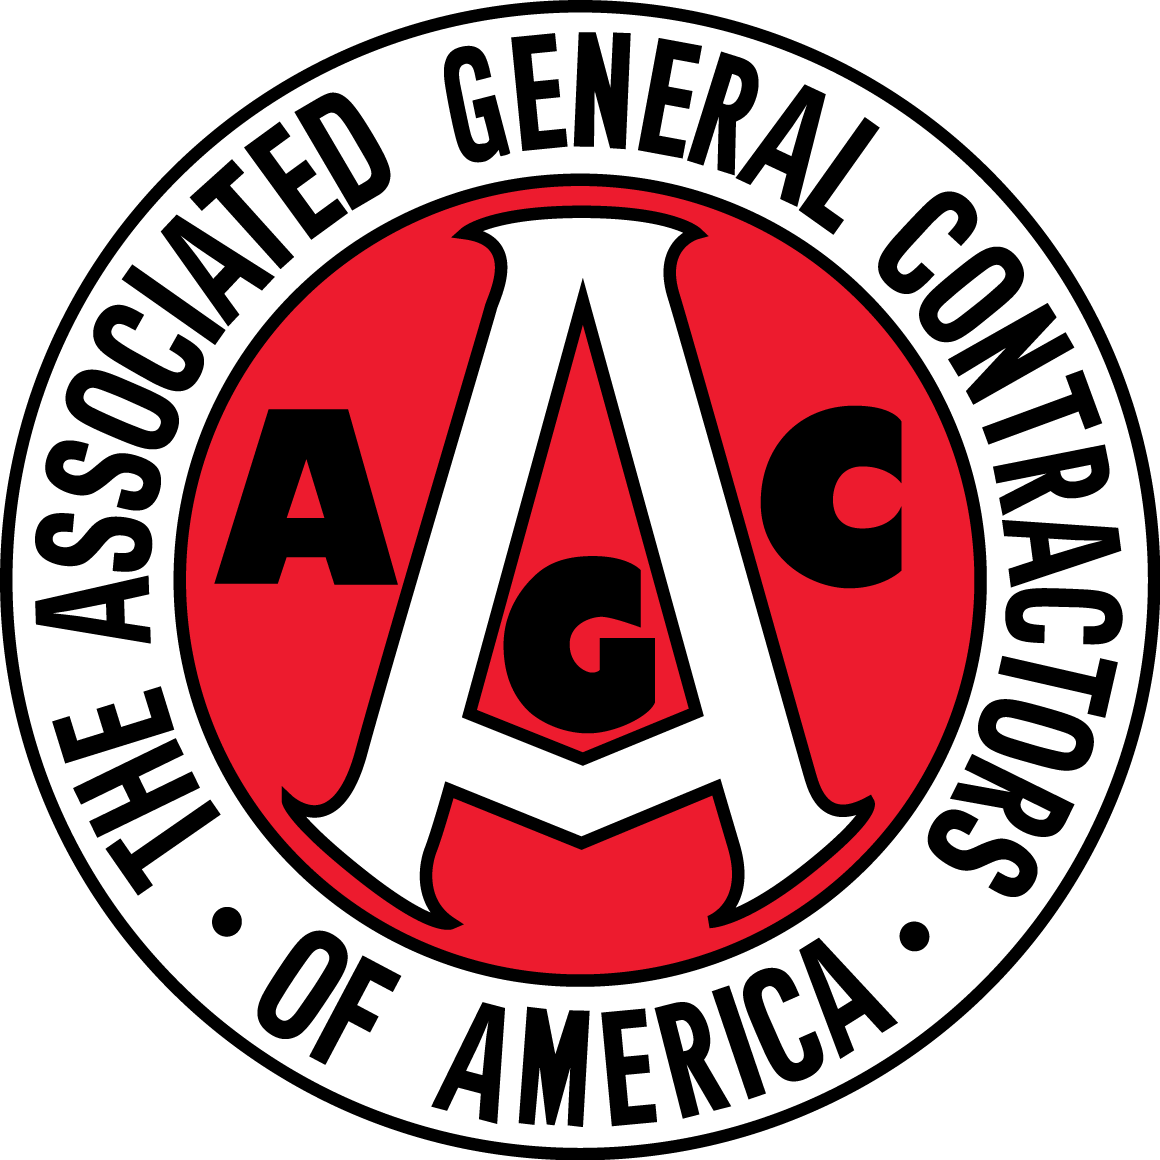 Associated General Contractors (AGC) of Rhode Island Announces Local Award Winner for Excellent Safety Record